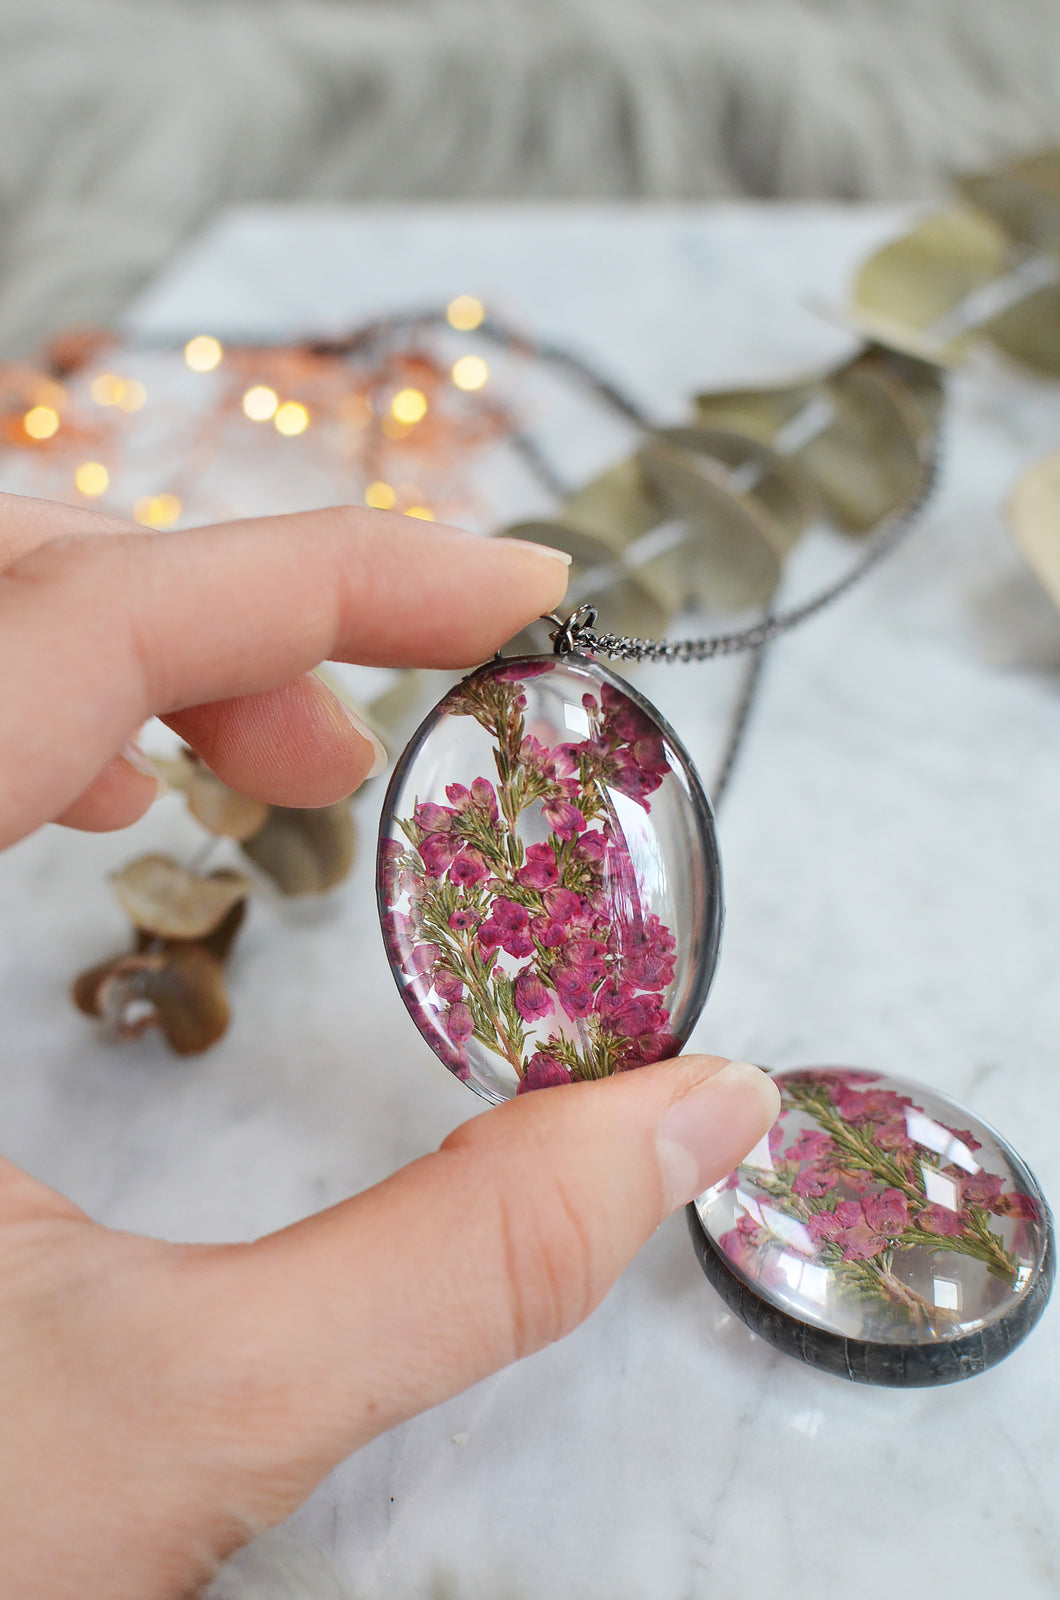 (Wholesale) of Pink heather flower glass pendant